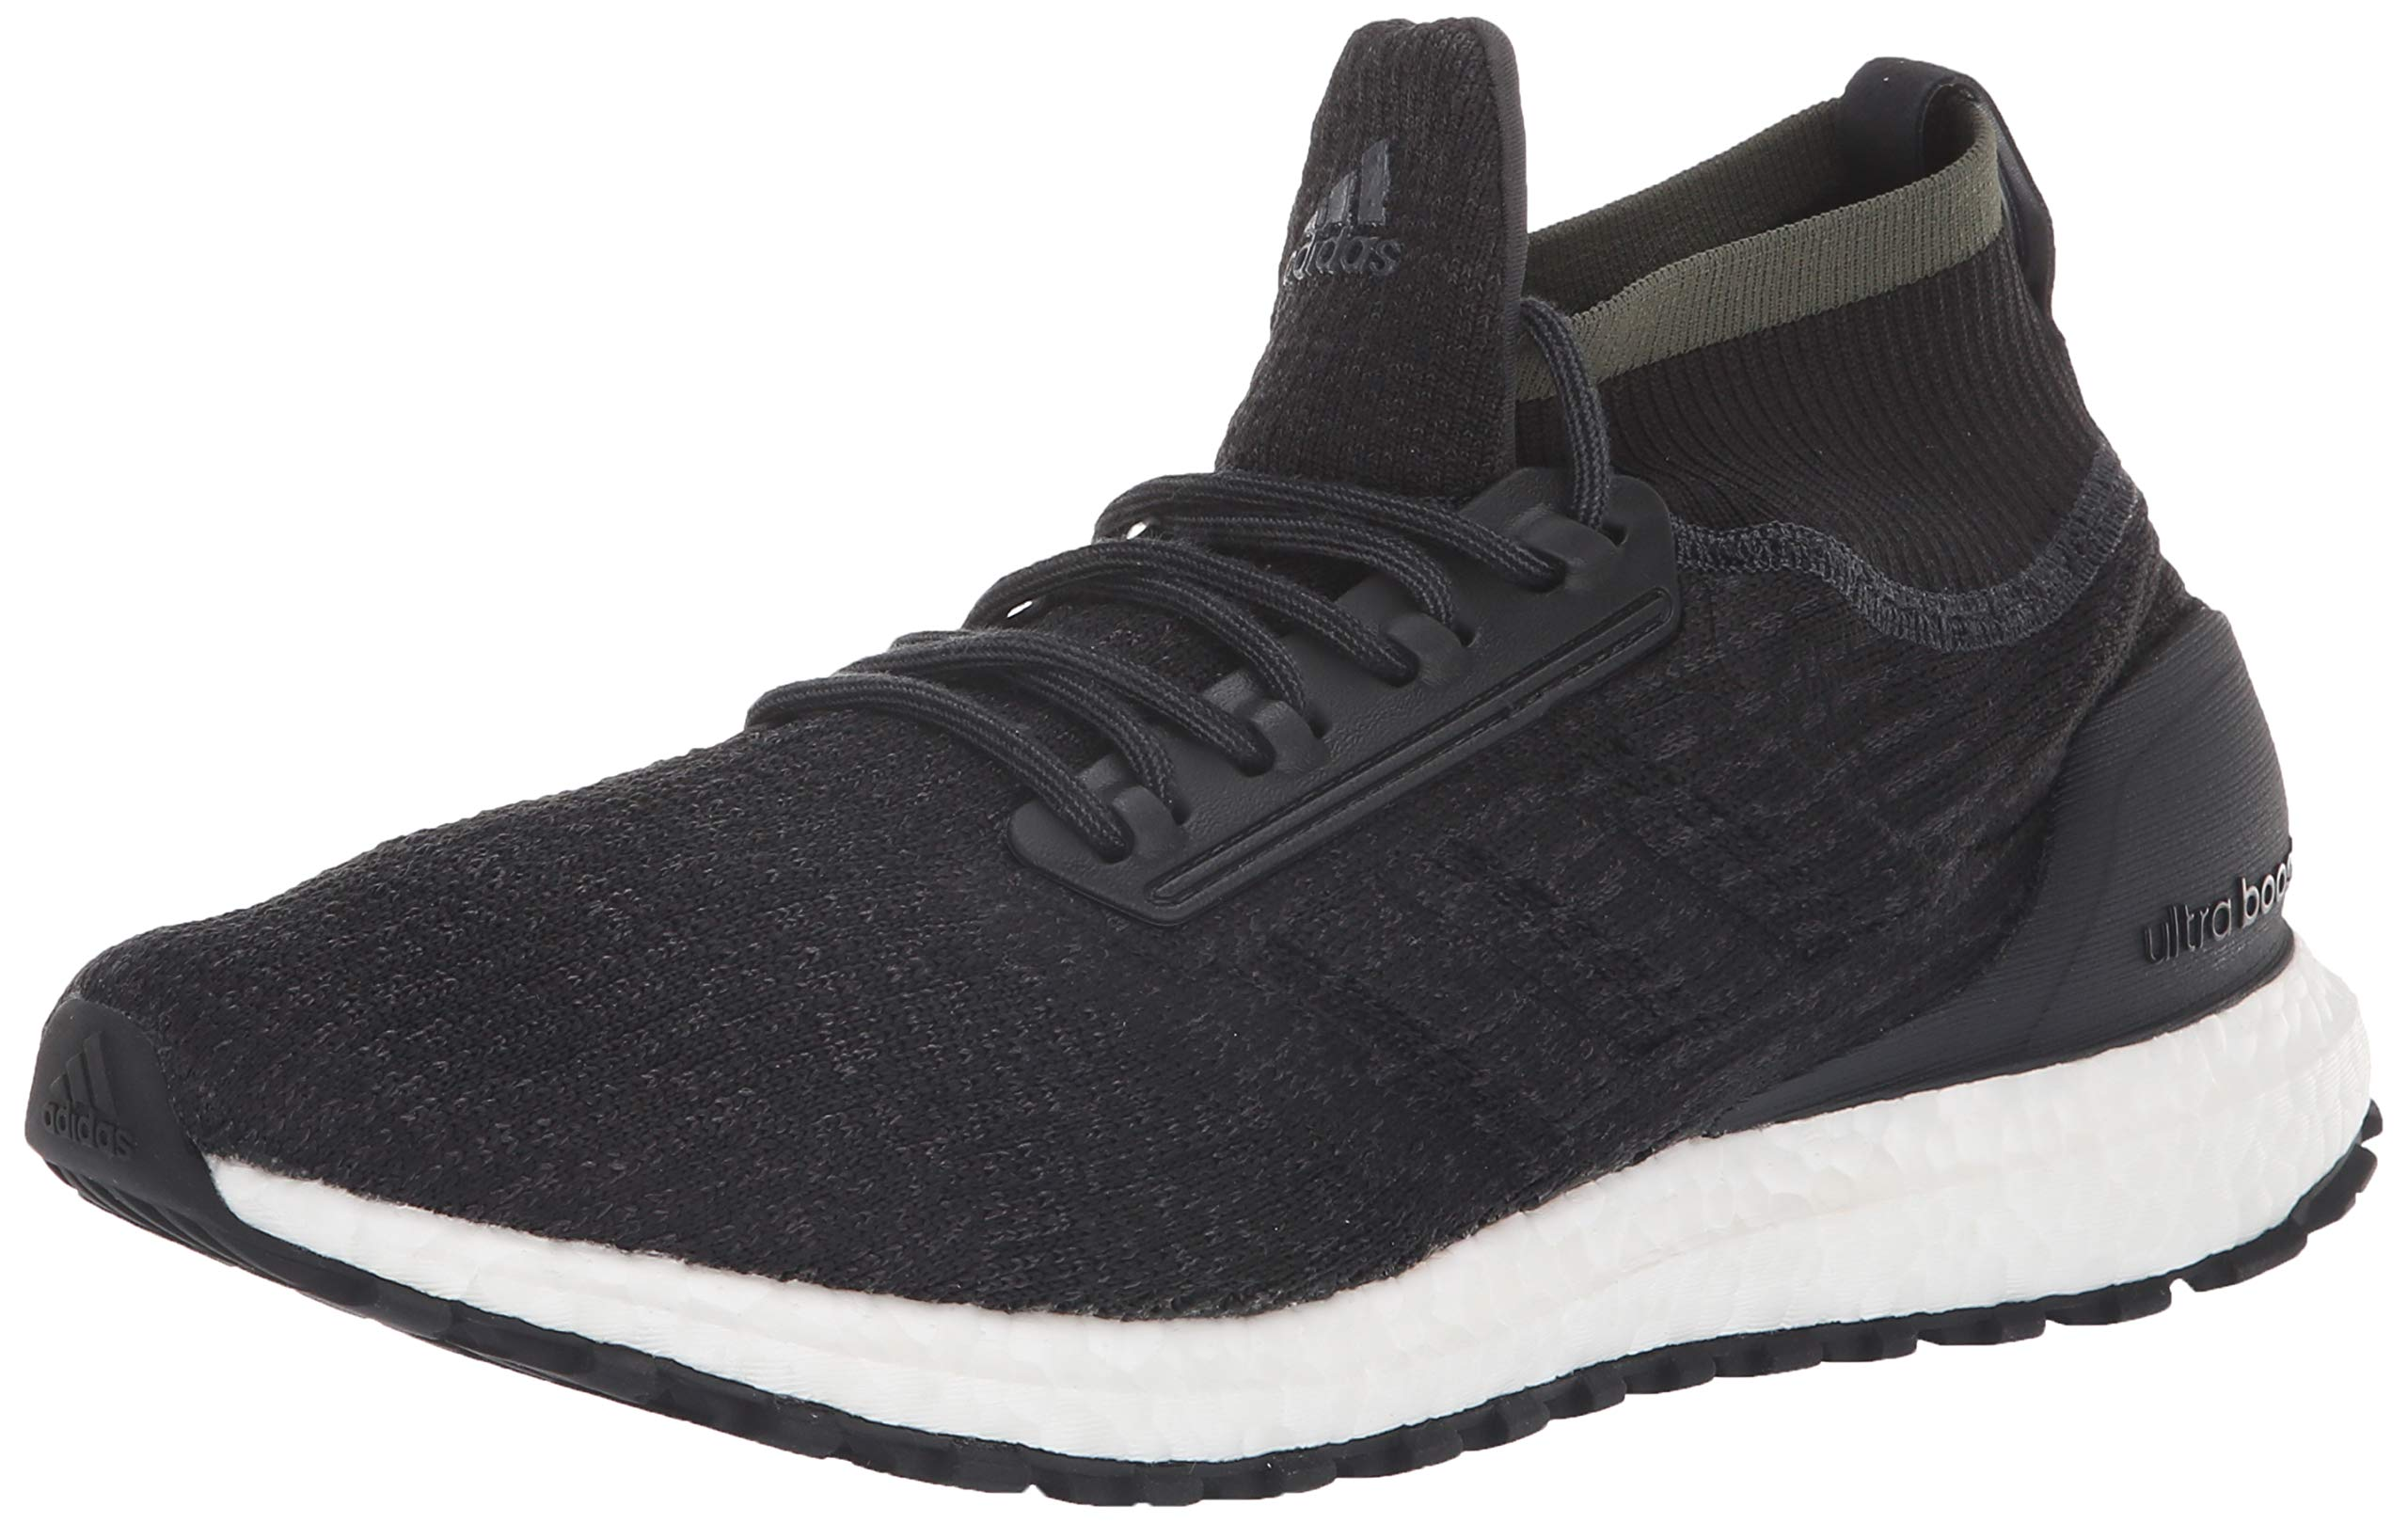 3e5c0e5db758d adidas Ultraboost All Terrain Shoes Men's